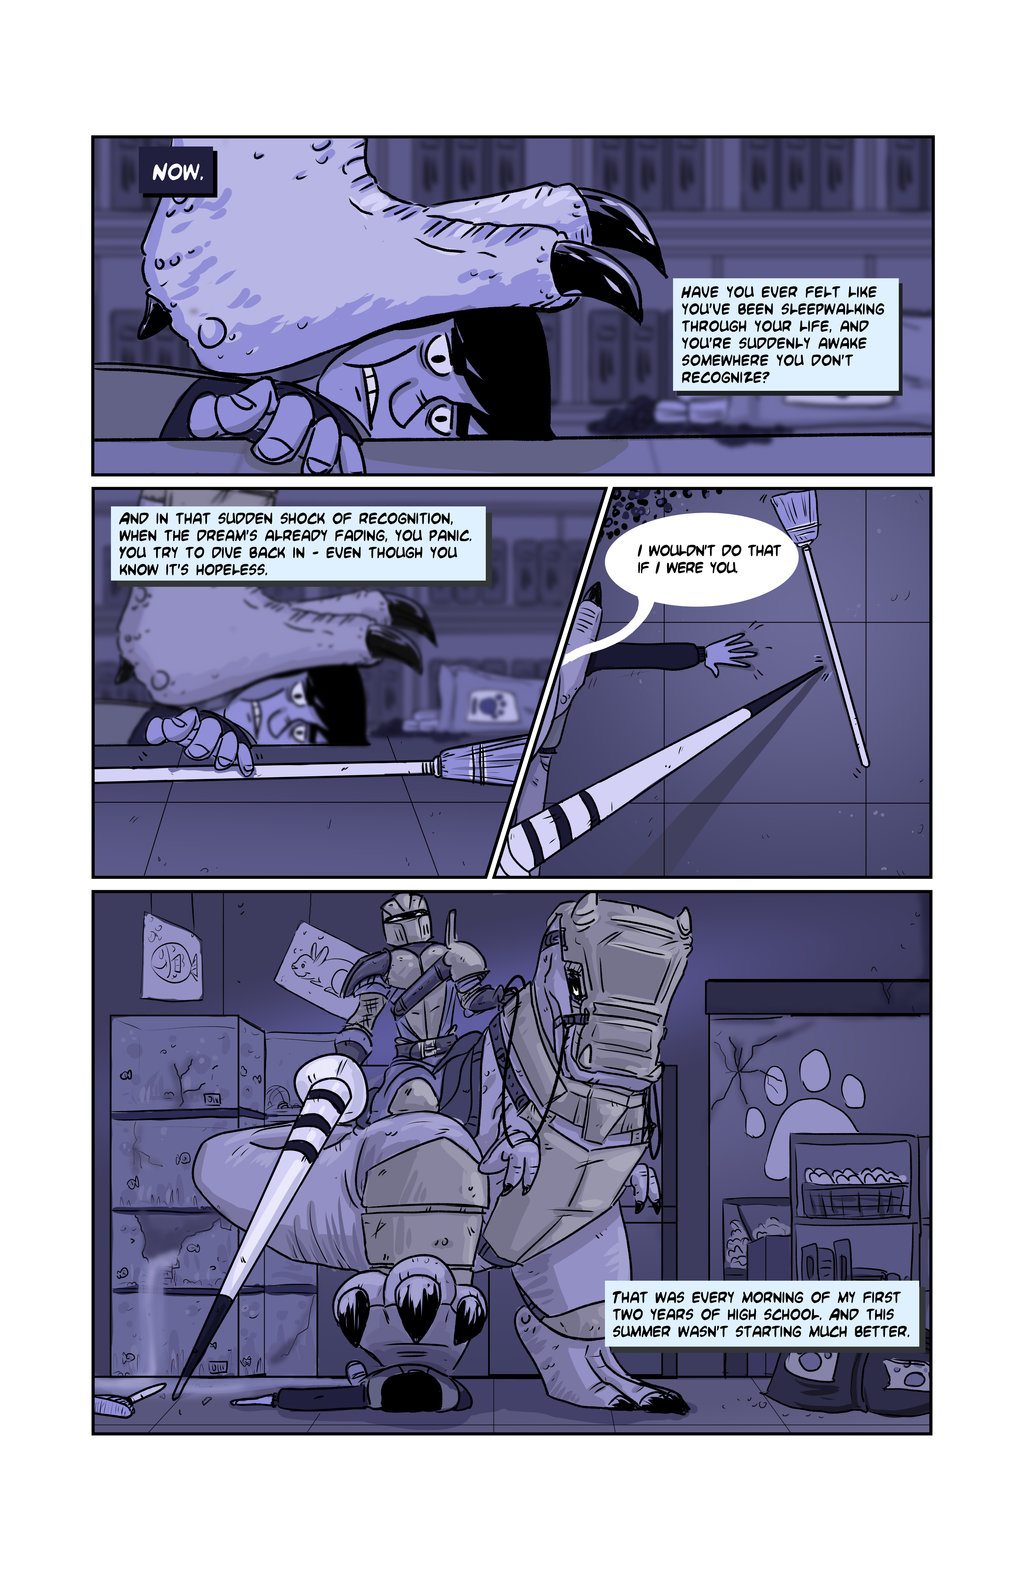 mayday__page_1__issue_1_by_austindlight-d7ylut3.jpg